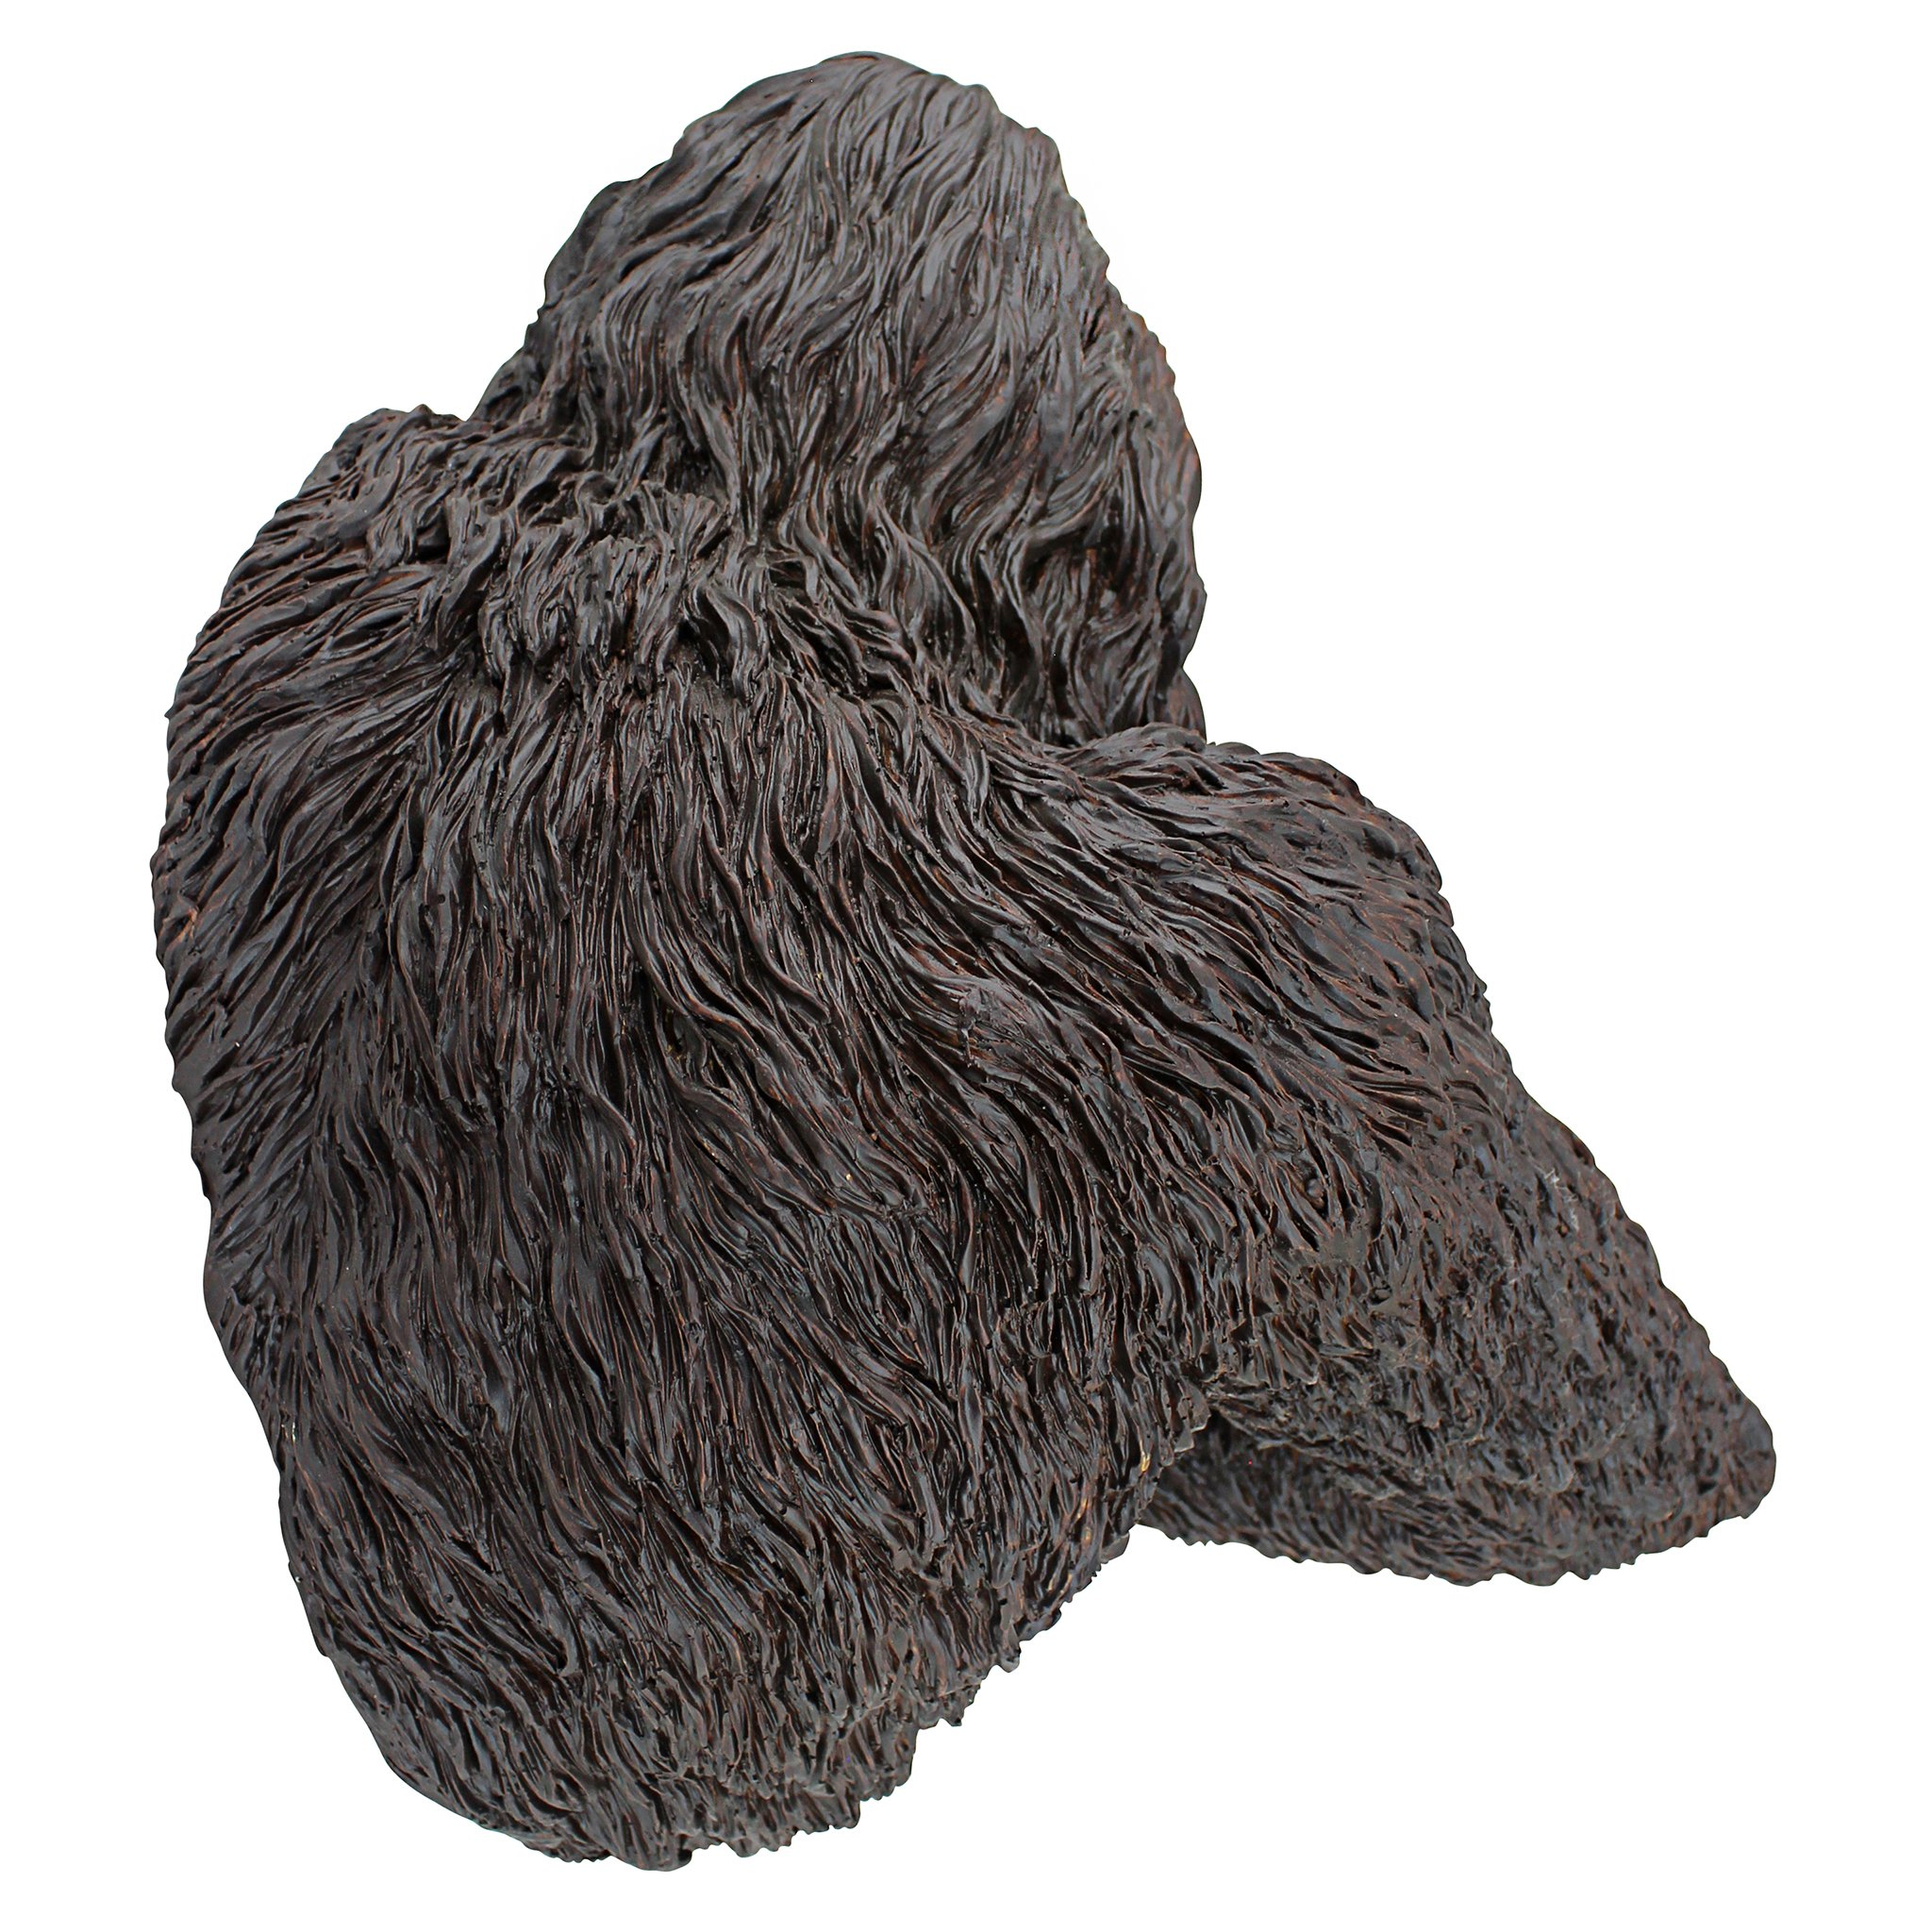 Design Toscano Bigfoot the Bashful Yeti Garden Tree Sculpture, 15 Inch, Polyresin, Full Color by Design Toscano (Image #3)